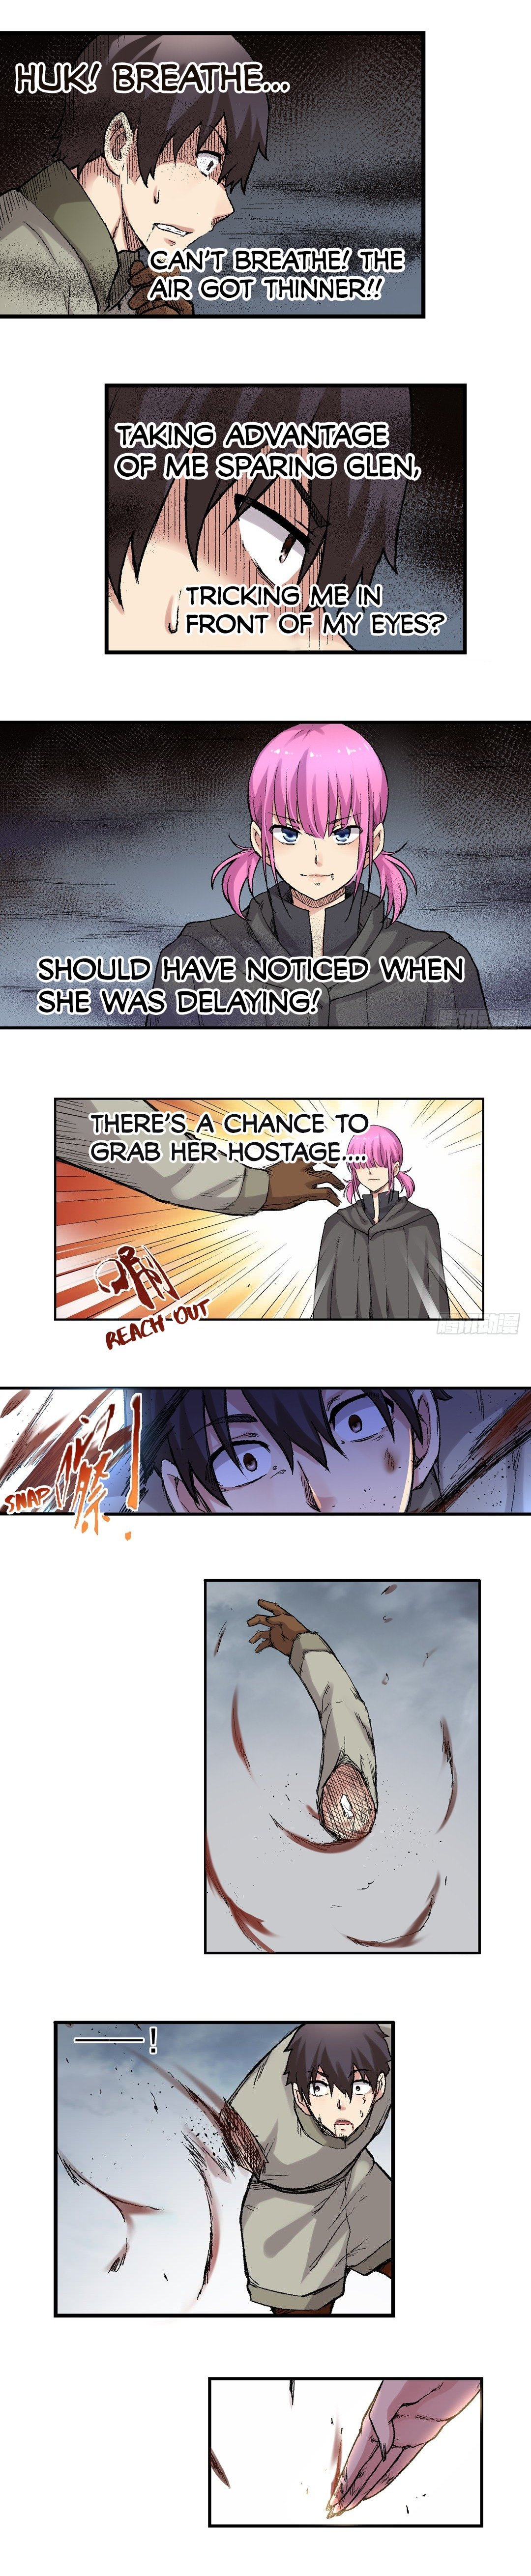 Manga Because I'm An Uncle who Runs A Weapon Shop - Chapter 66 Page 13